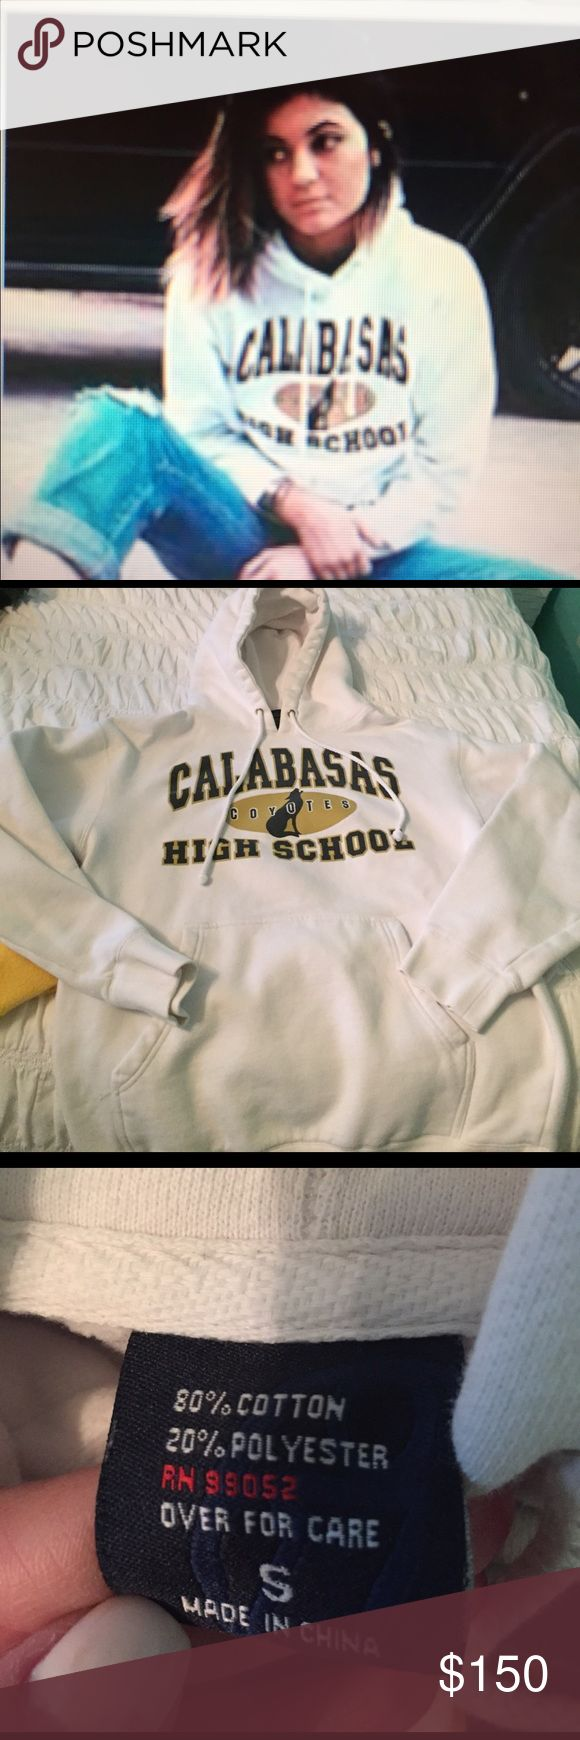 Kylie K wearing a Calabasas high hoodie! Yes this Is obviously a very old picture of Kylie K wearing a Calabasas High School hoodie! Size adult small or unisex size small hoodie from the Calabasas high soccer team. Just thought I would put it out there to see if it worth anything to anyone! My daughters wore this in high school. Sweaters